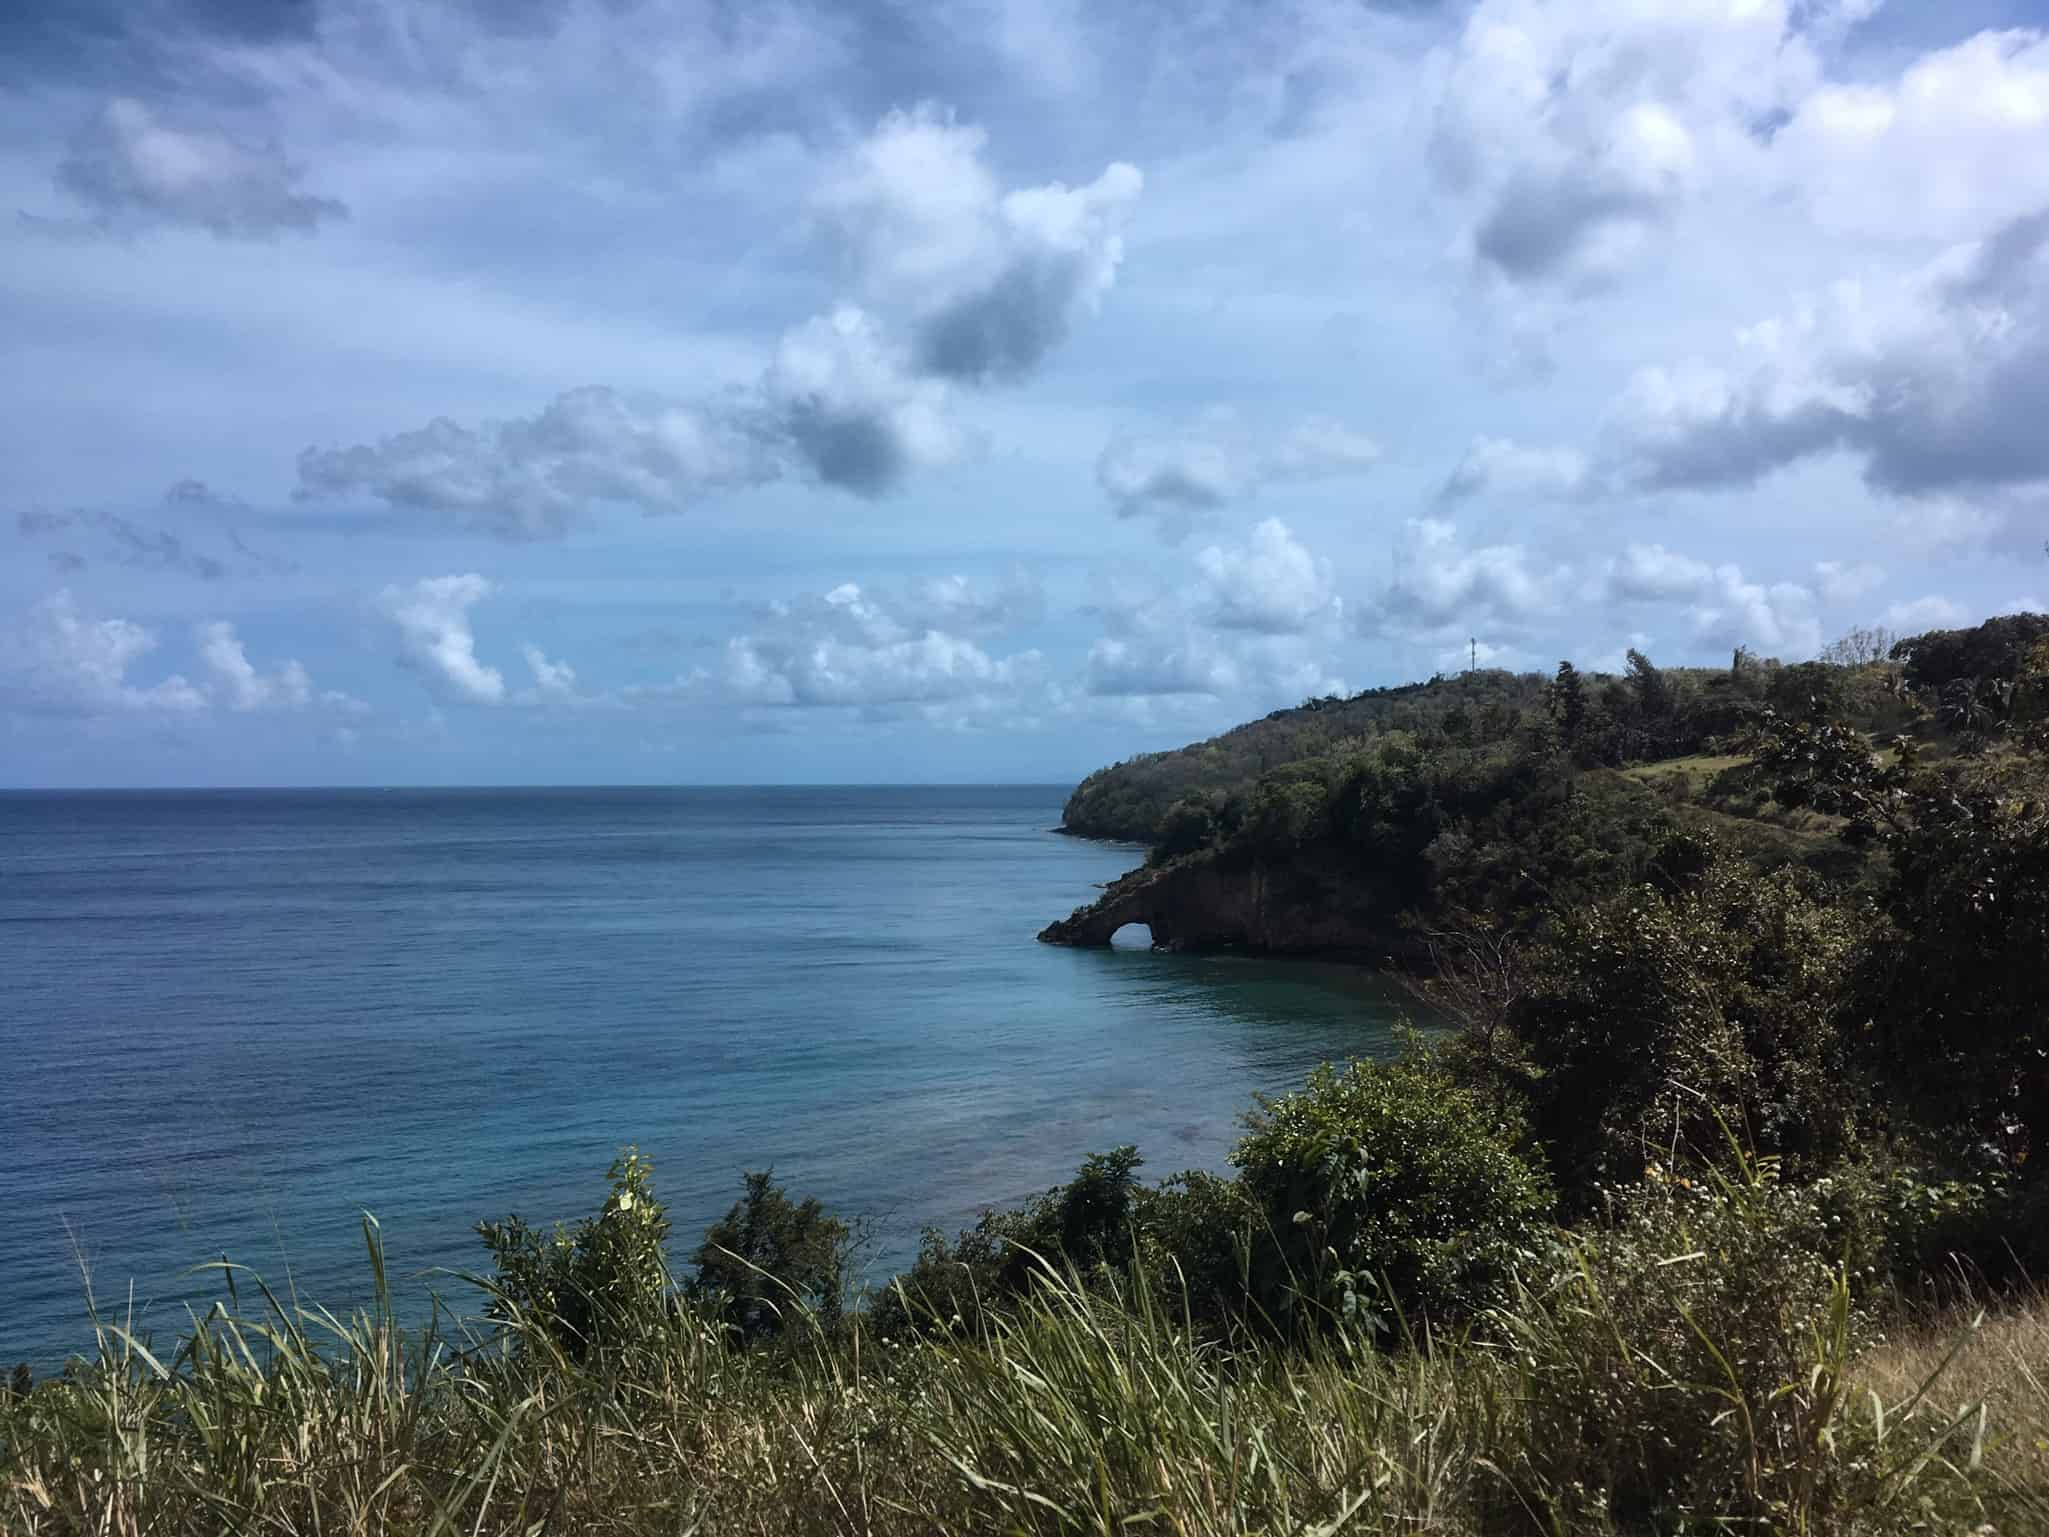 St. Lucia ocean with point jutting out forming a passage